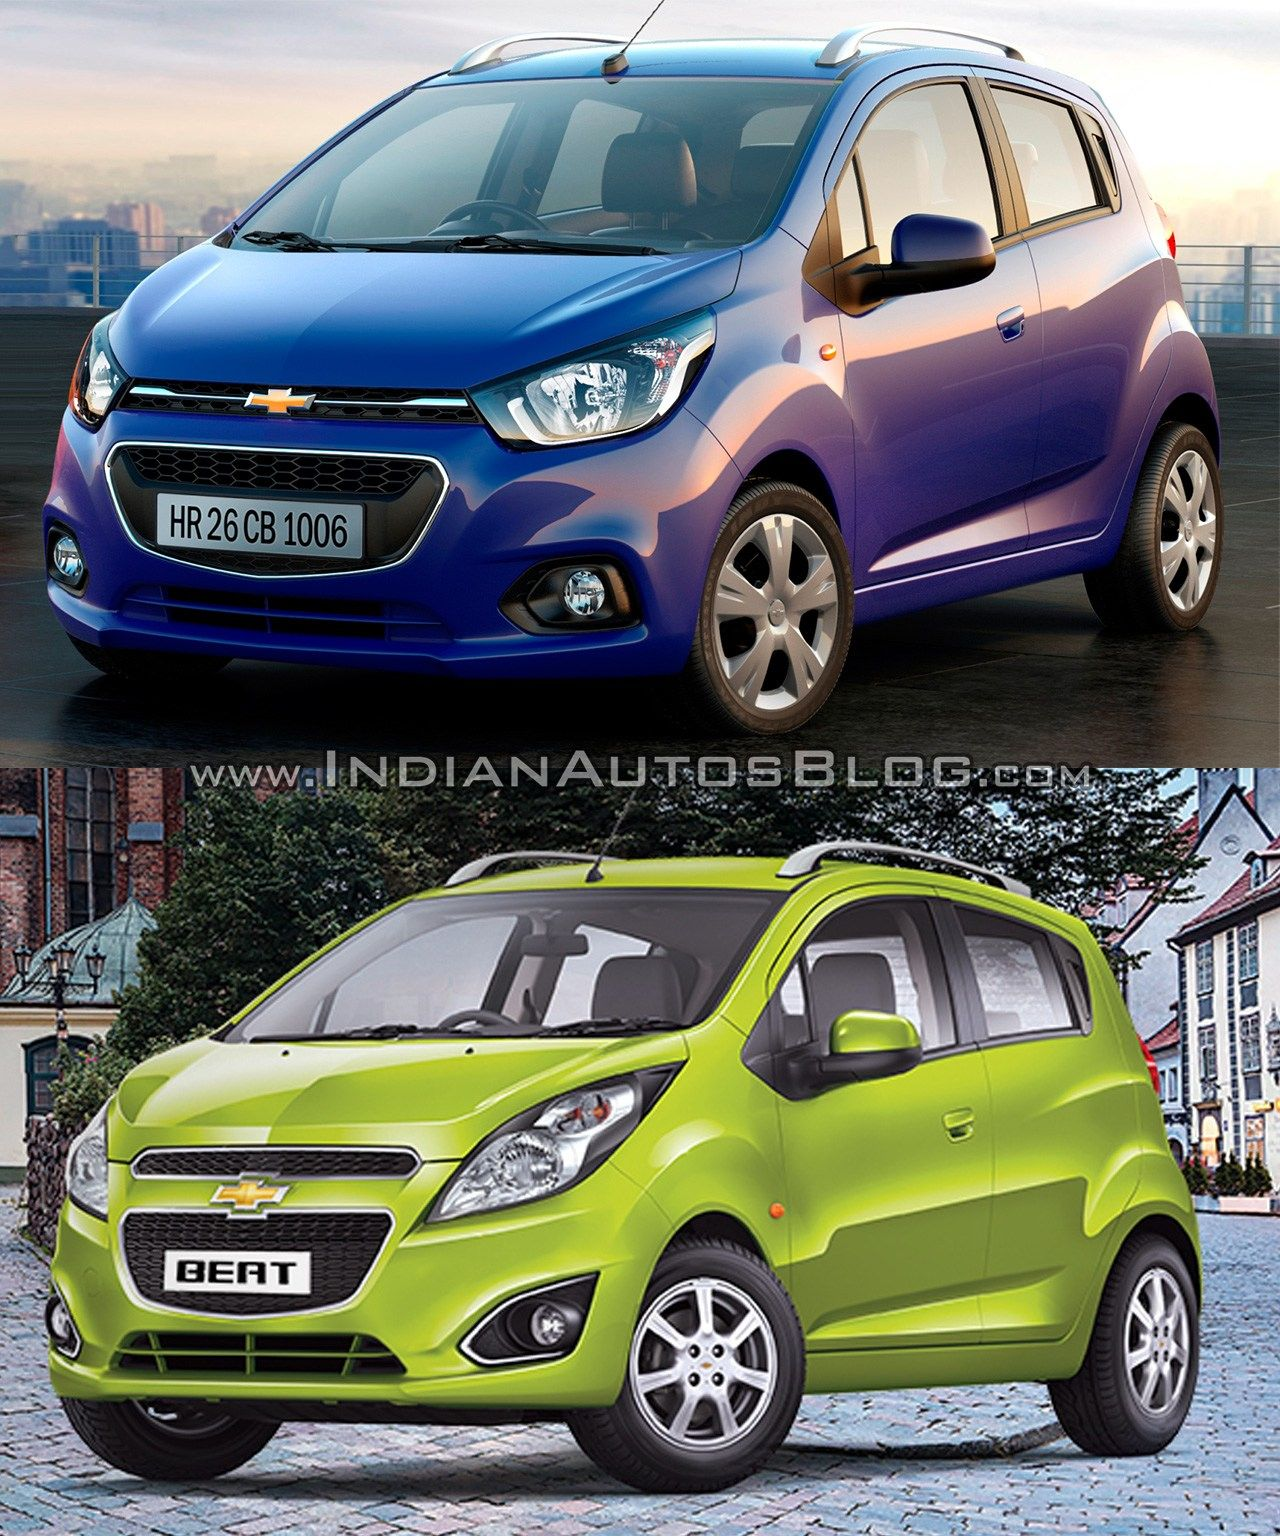 Next Gen Chevrolet Beat Vs Current Chevrolet Beat Old Vs New In